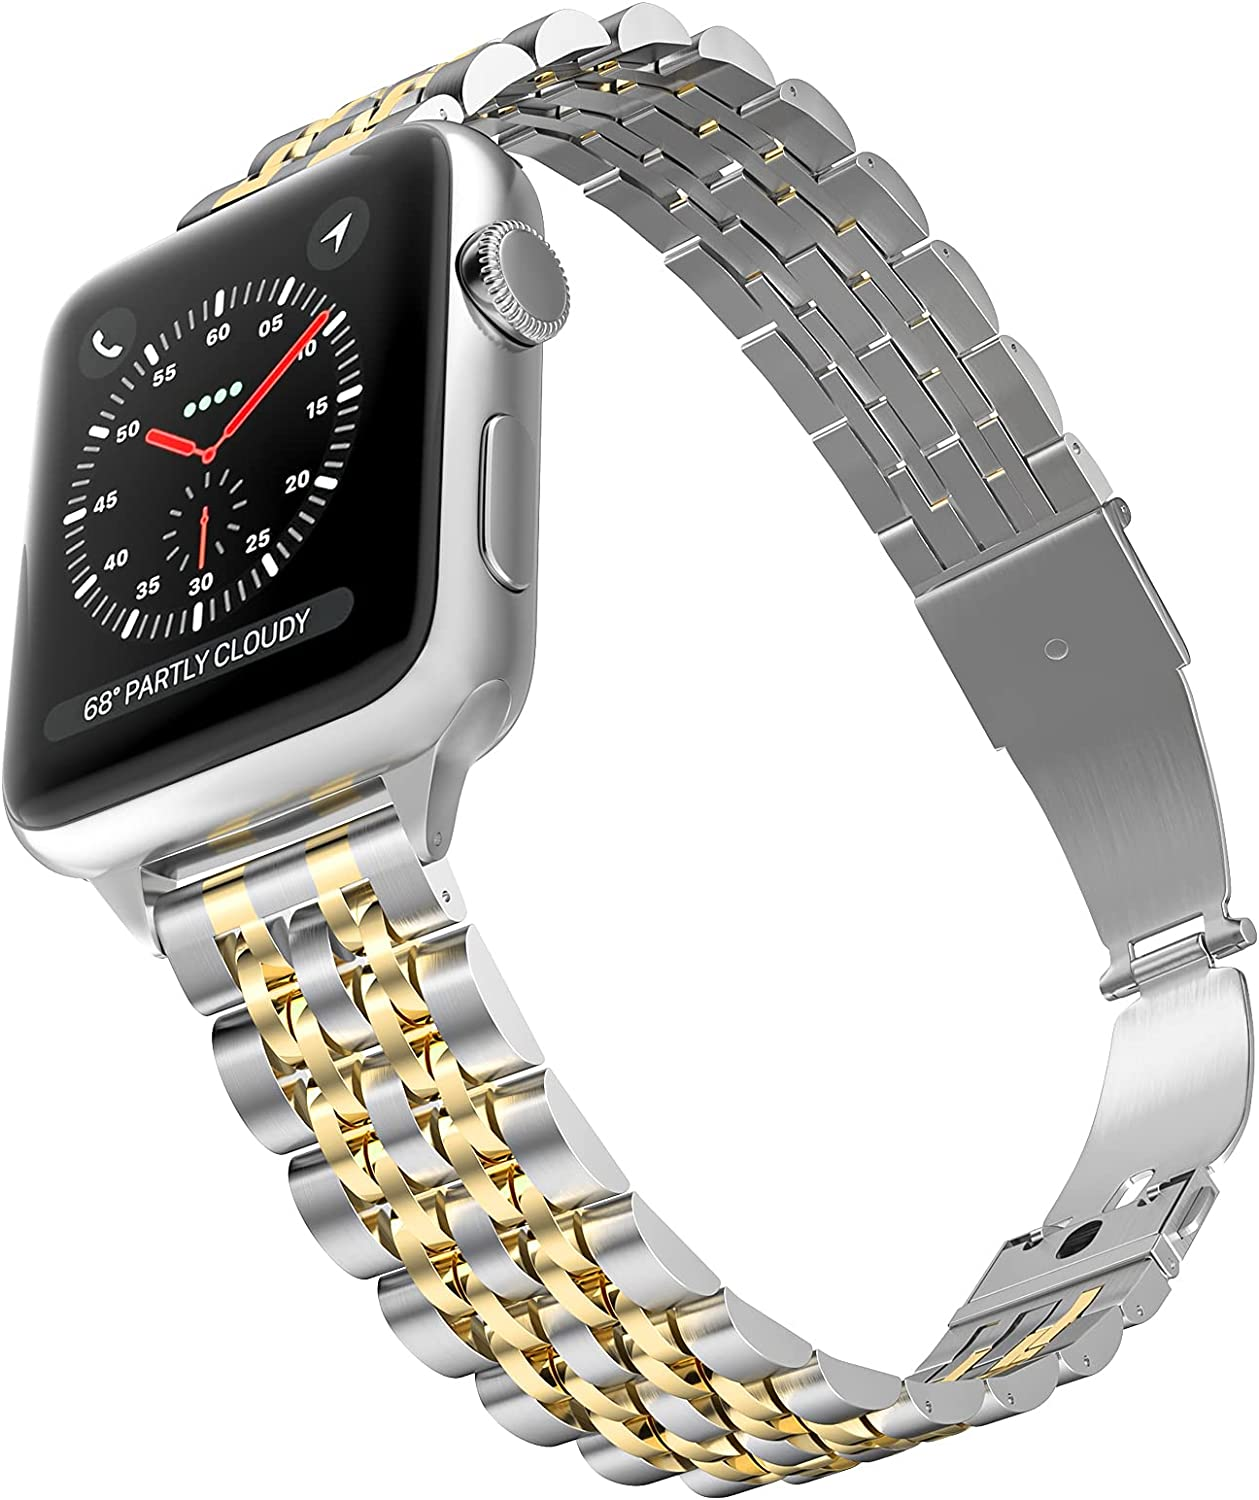 CINORS Women Band Compatible with Apple iWatch 38mm 40mm Thin Slim Ladies Replacement Stainless Steel Bands for Series 6 5 4 3 2 1 Silver and Gold